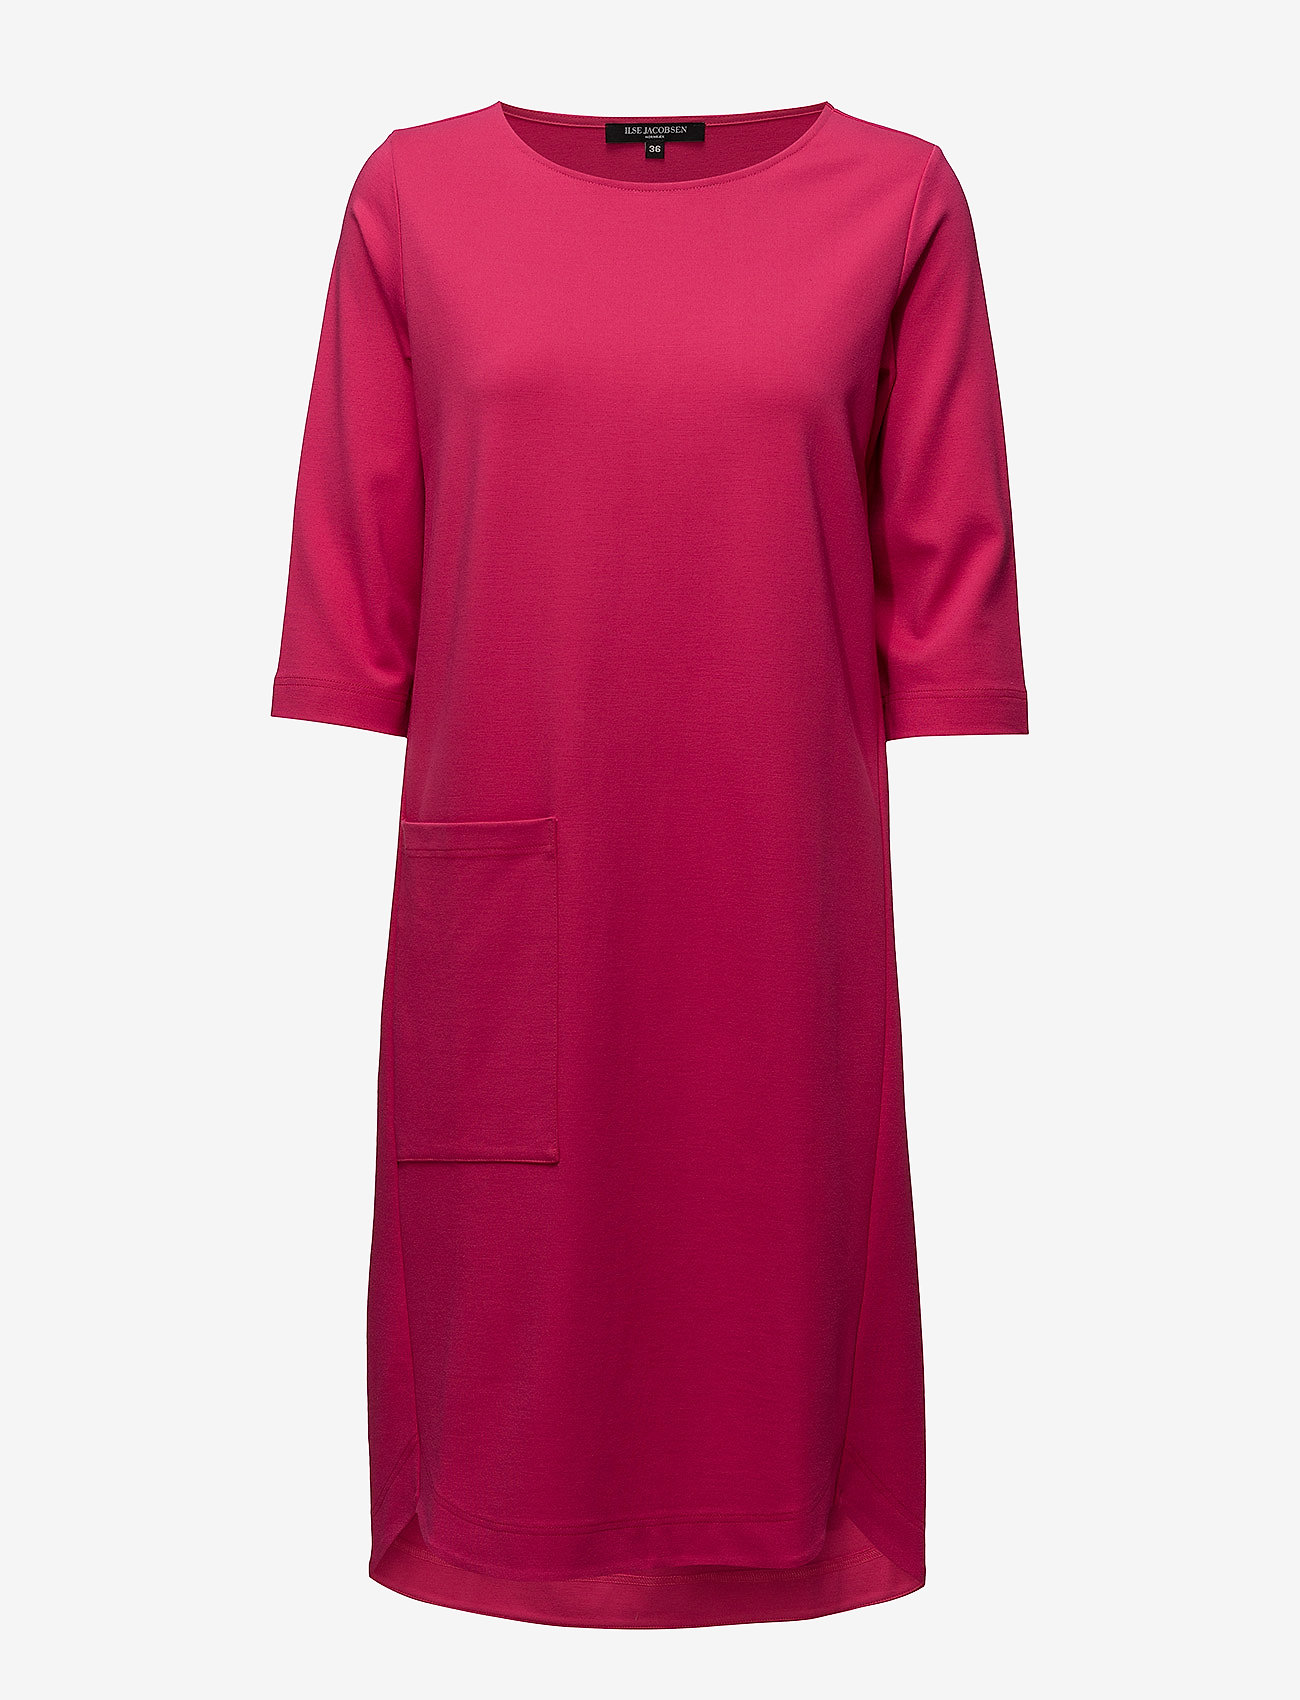 Ilse Jacobsen - DRESS - midi kjoler - 317 warm pink - 0